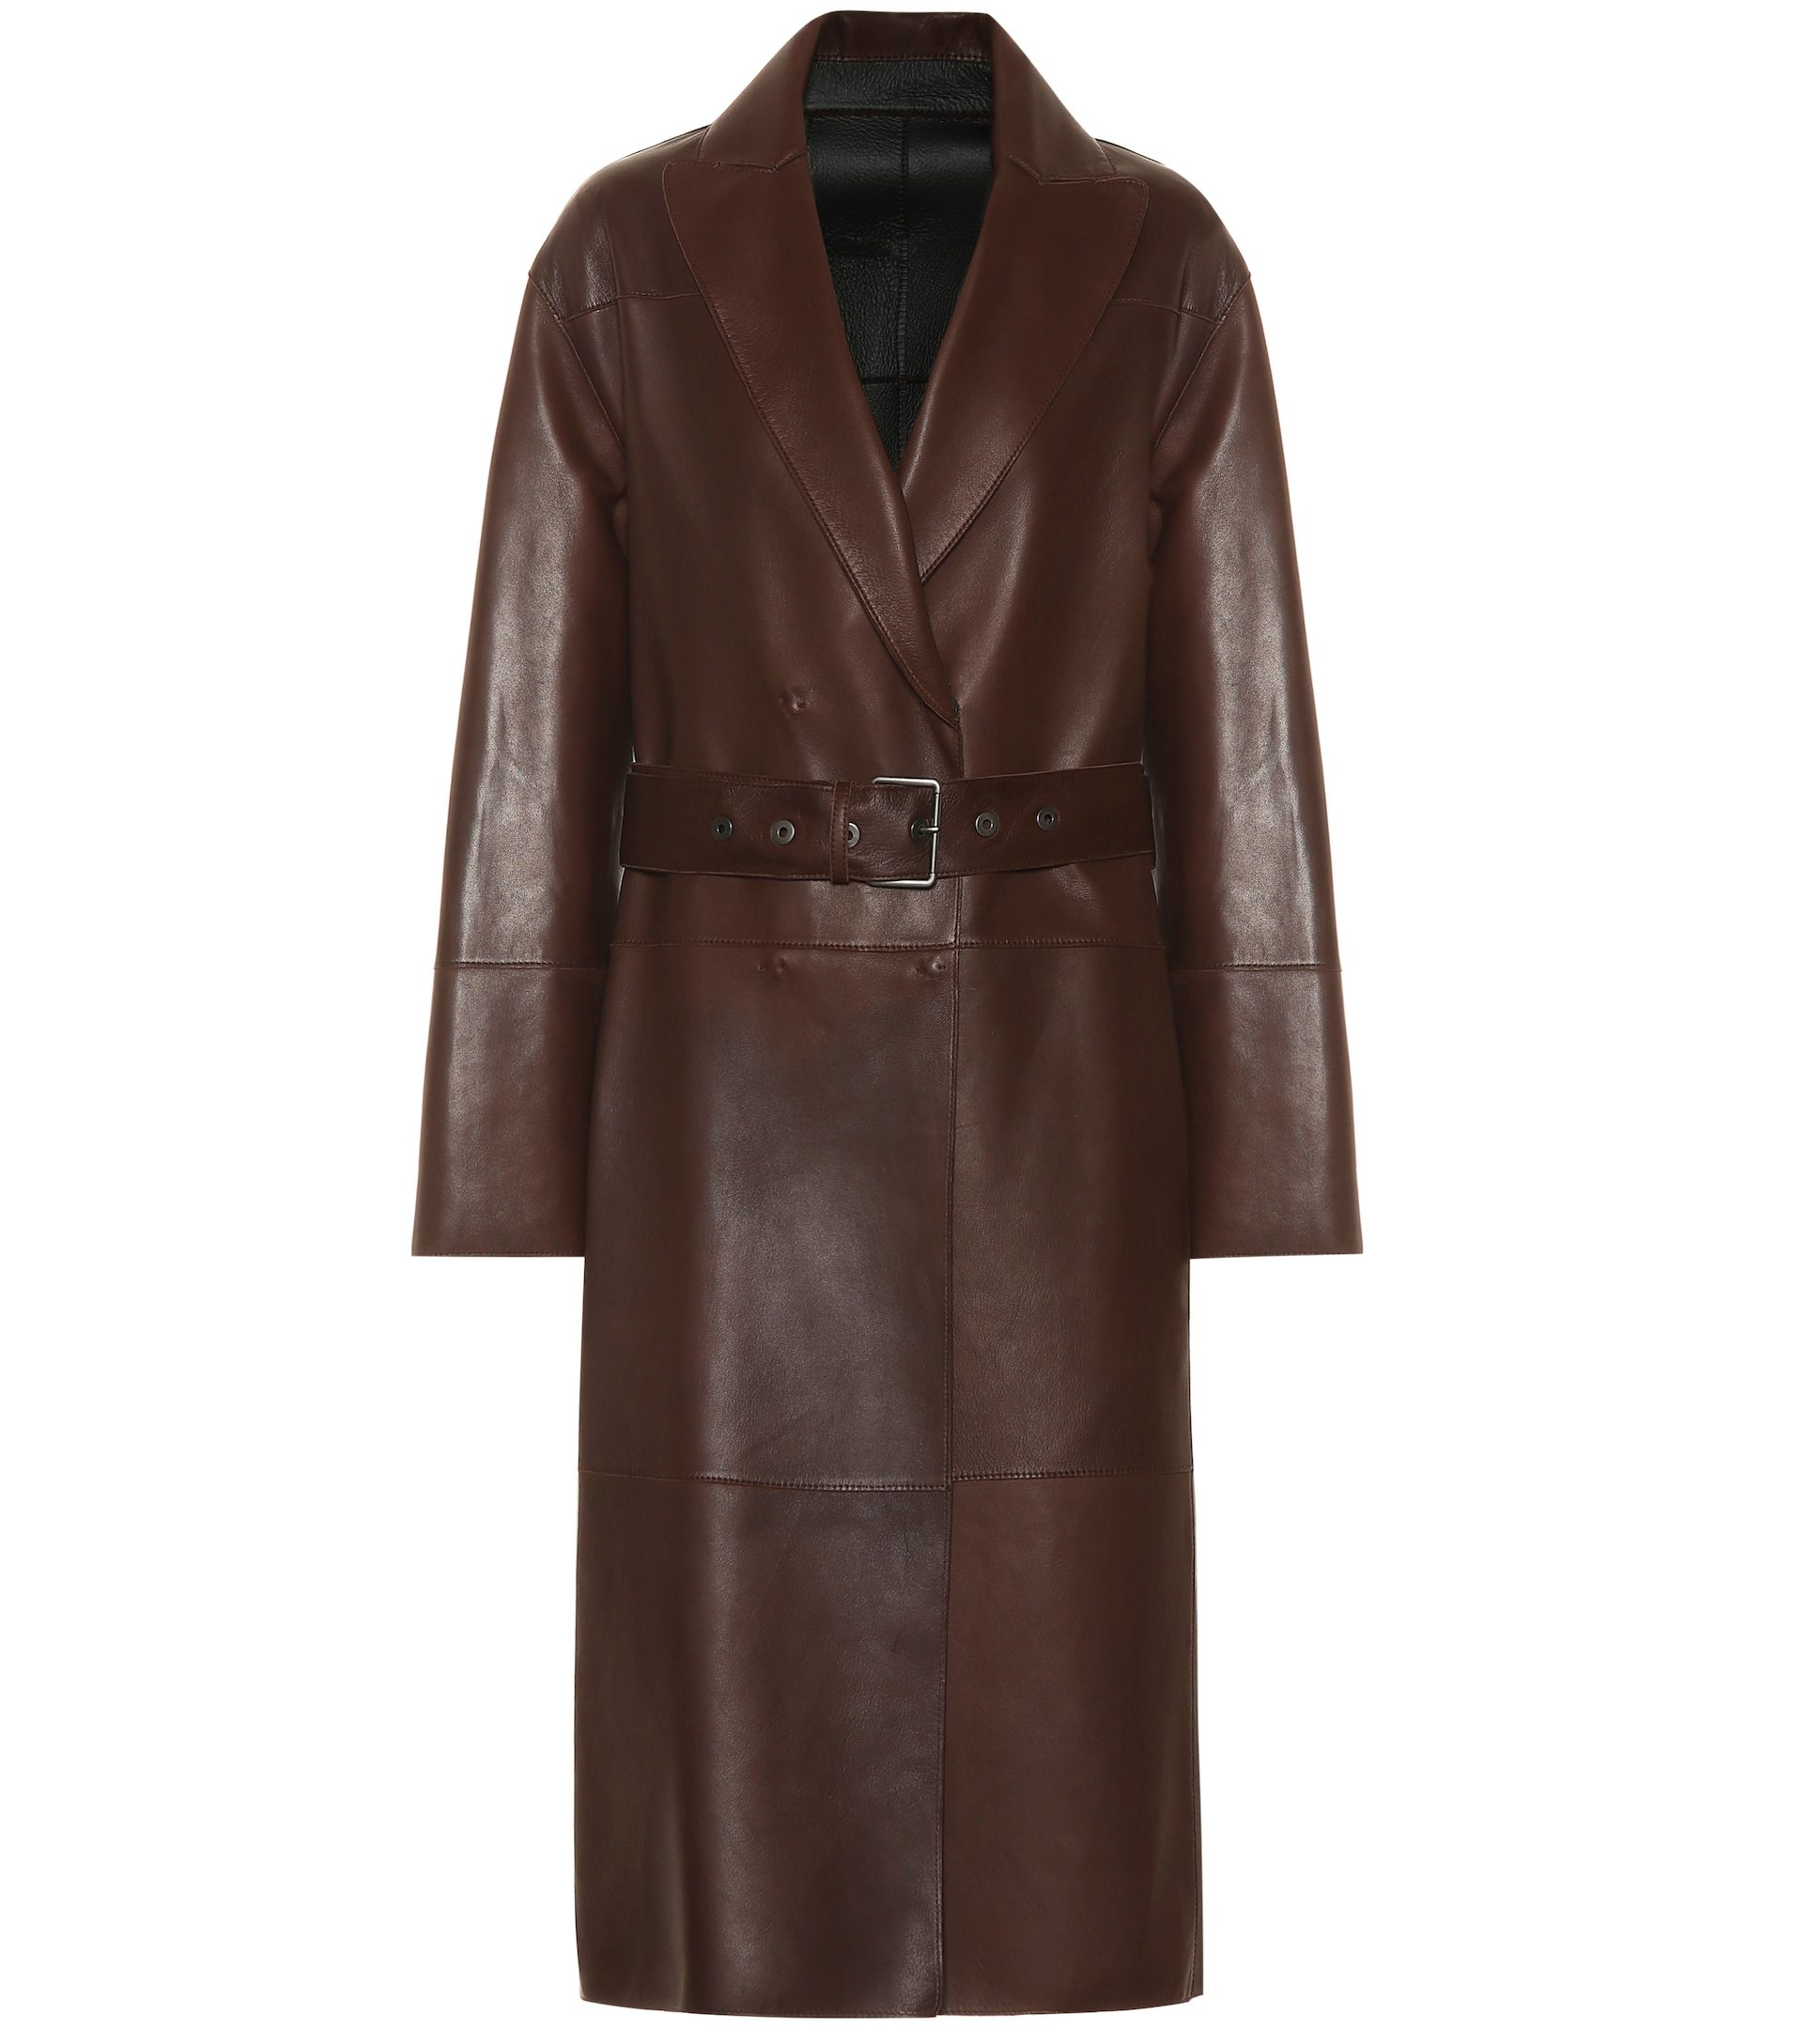 Brunello Cucinelli chocolate brown leather trench coat in